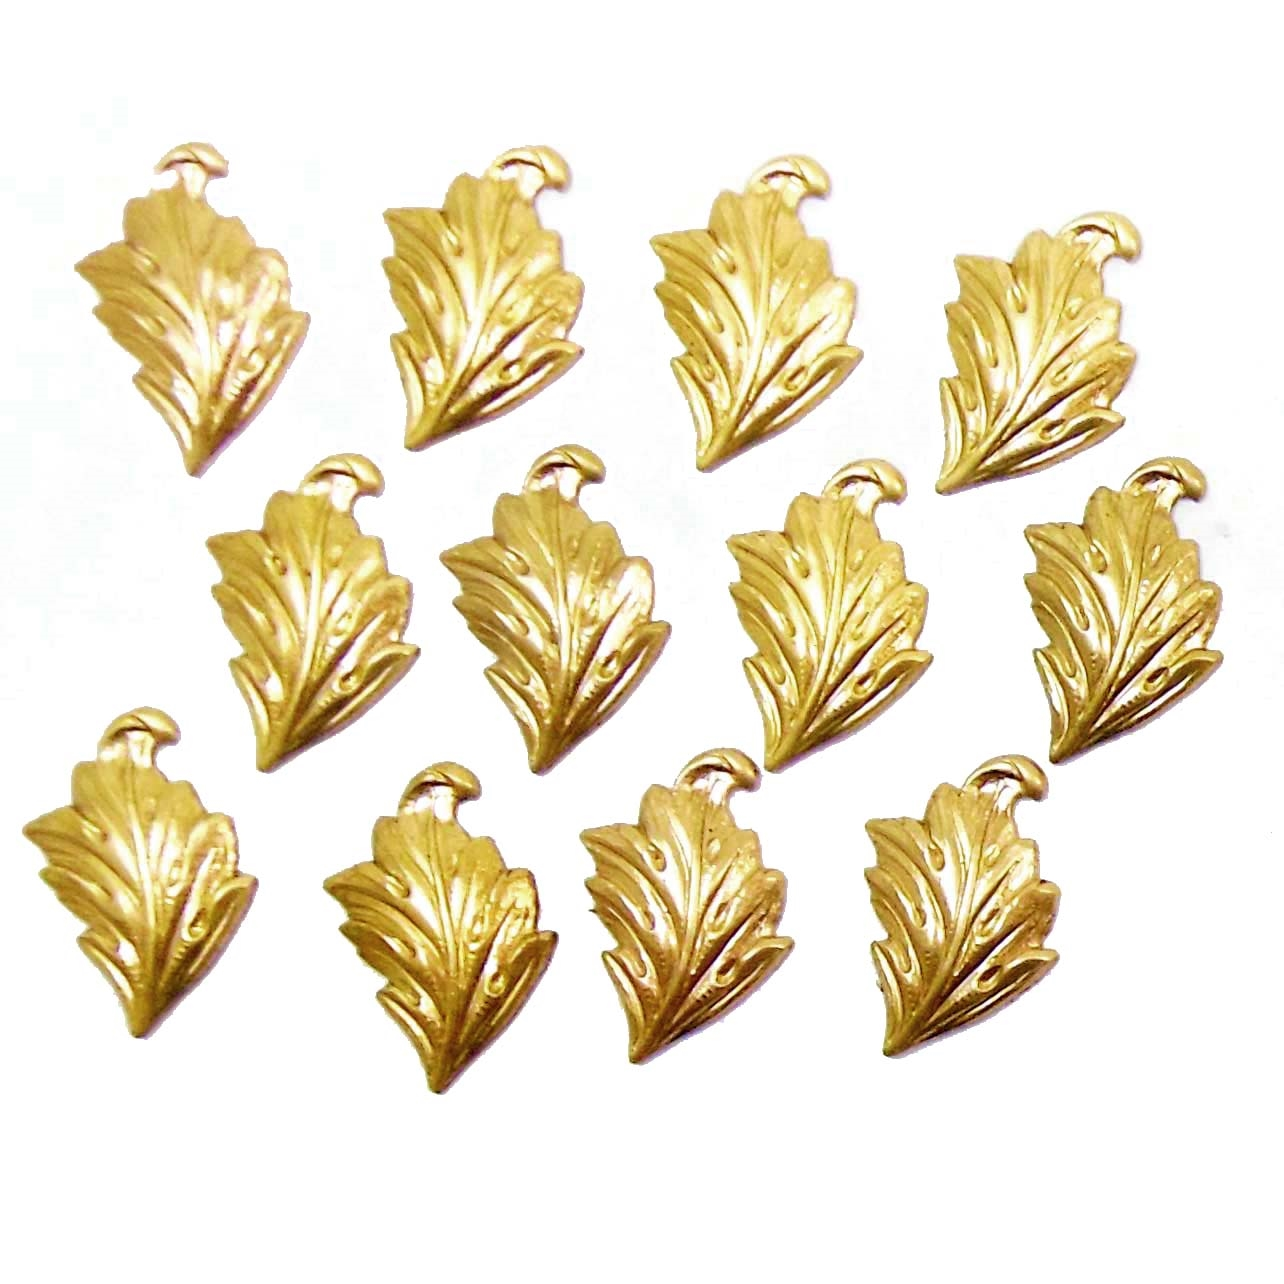 brass leaves, leaf stampings, jewelry supplies, right facing, raw brass, 01314, B'sue Boutiques, US made jewelry supplies, vintage jewellery supplies, nickel free jewelry supplies, antique brass, leaf accents